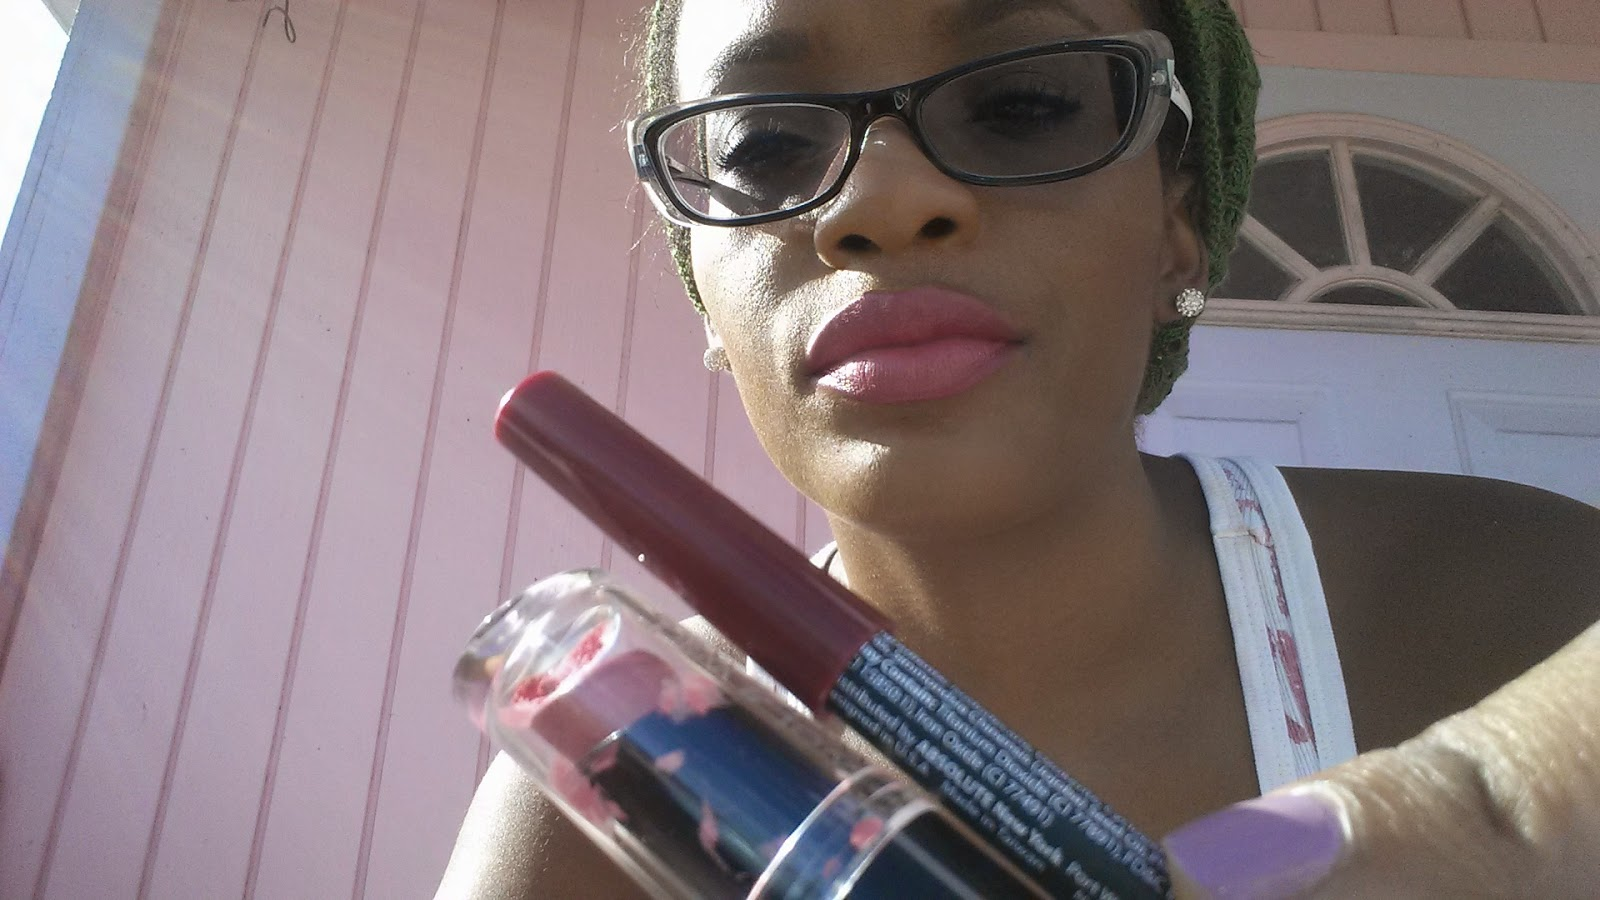 Wet n Wild '906D Wine Room' + Absolute New York Waterproof Gel Lip Liner 'Berry' www.modenmakeup.com